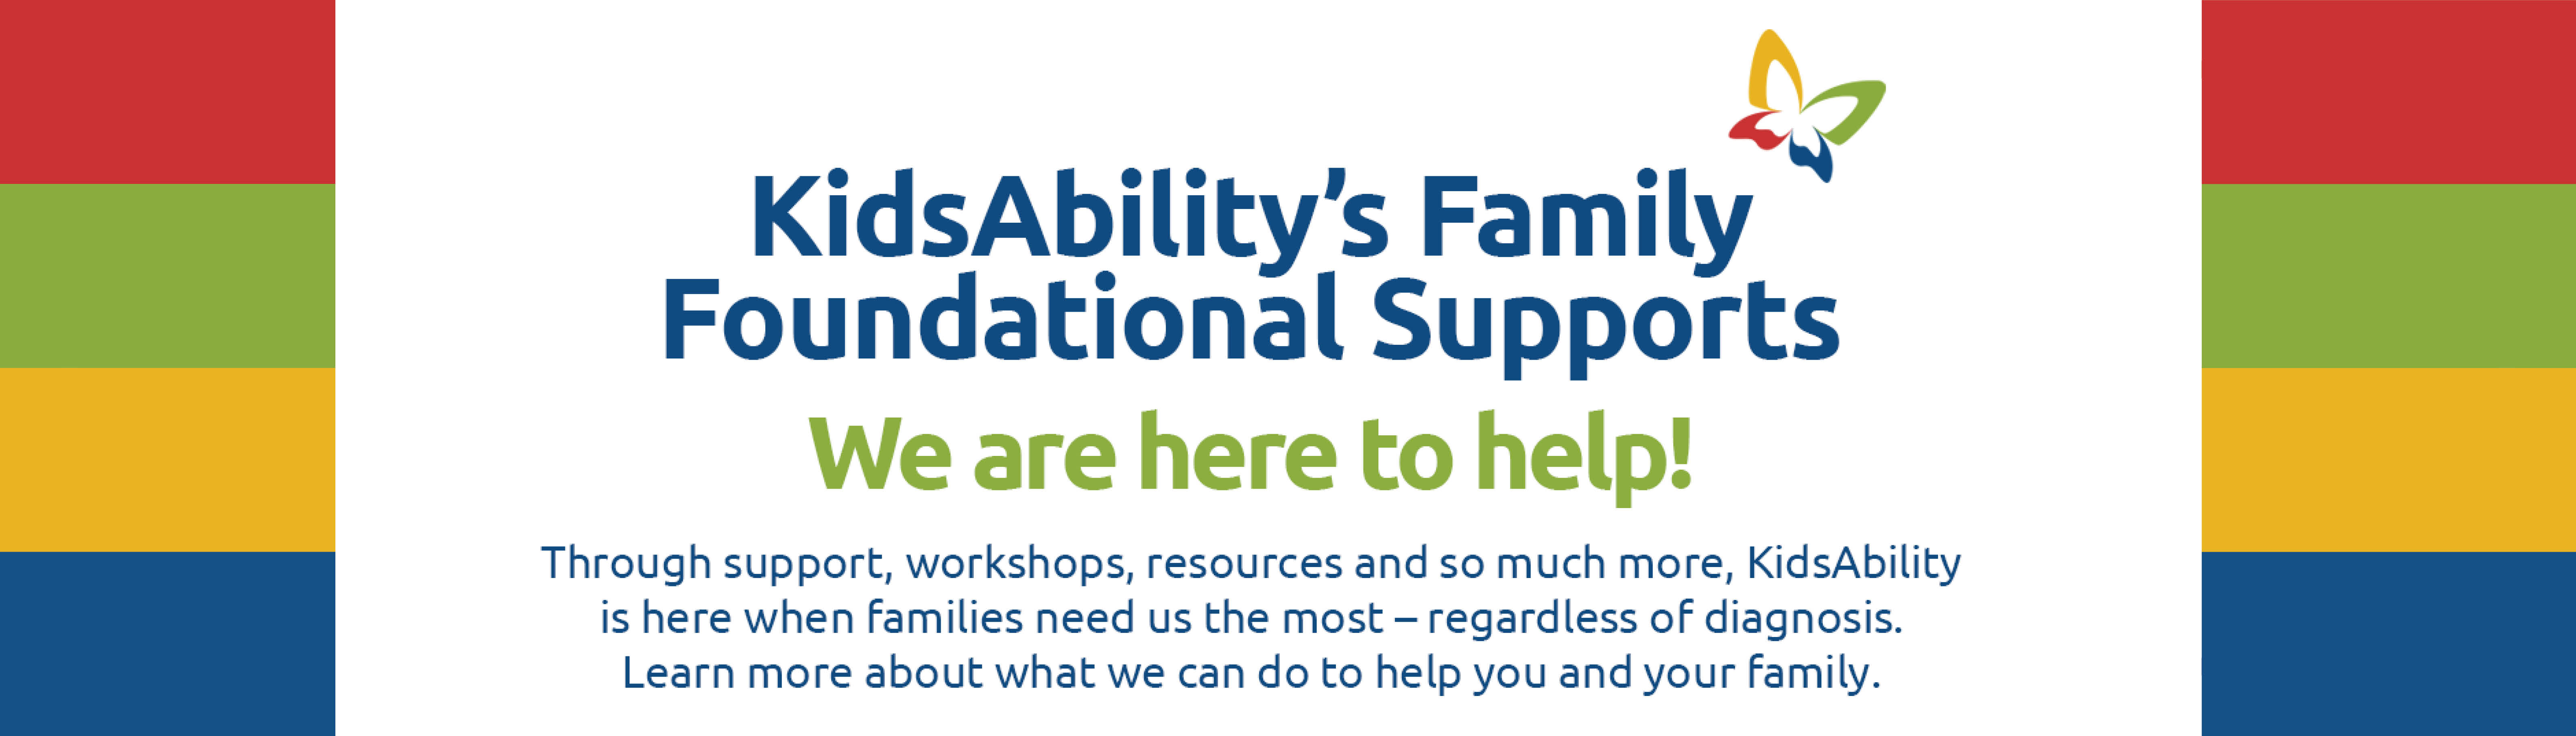 Foundational Family Supports at KidsAbility. No diagnosis needed. Learn more about how we can help